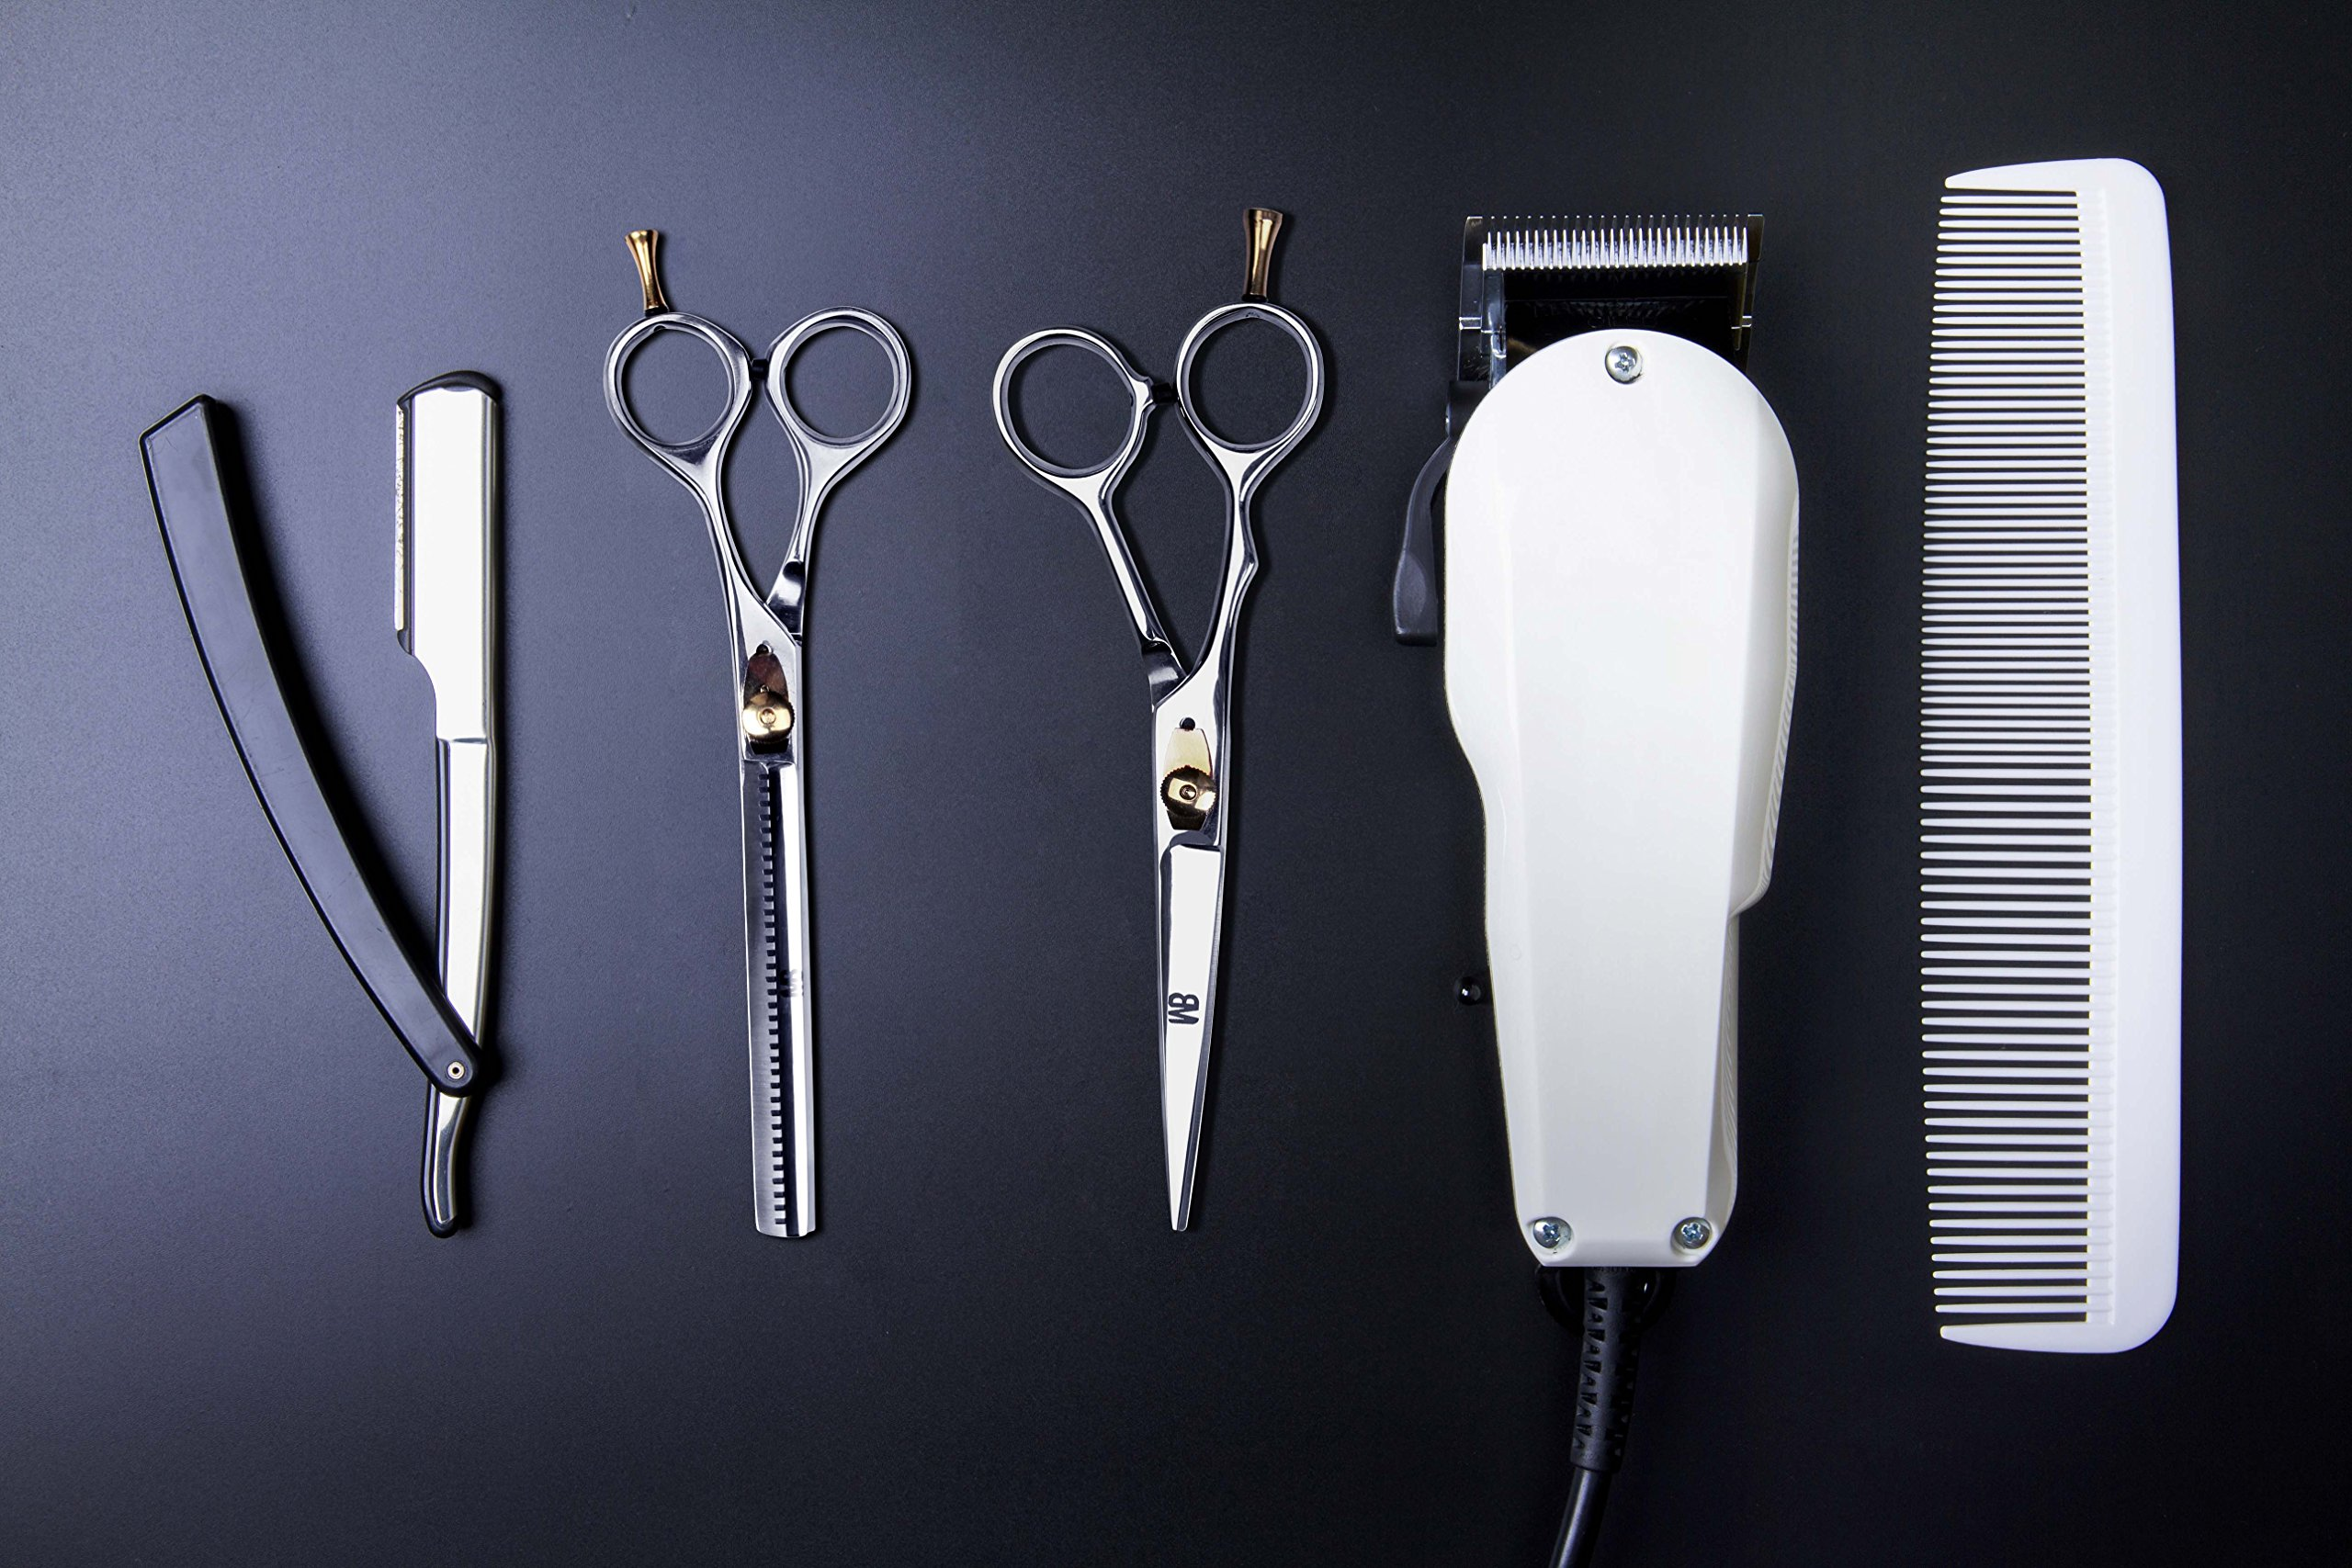 Professional Barber Scissor 6.5 Inch Razor Edge Blade Rust Free Stainless Steel Chrome Plated Shears For Smooth Cutting - Easy Grip Hairdressing Cosmetic Scissors by MB (Image #7)